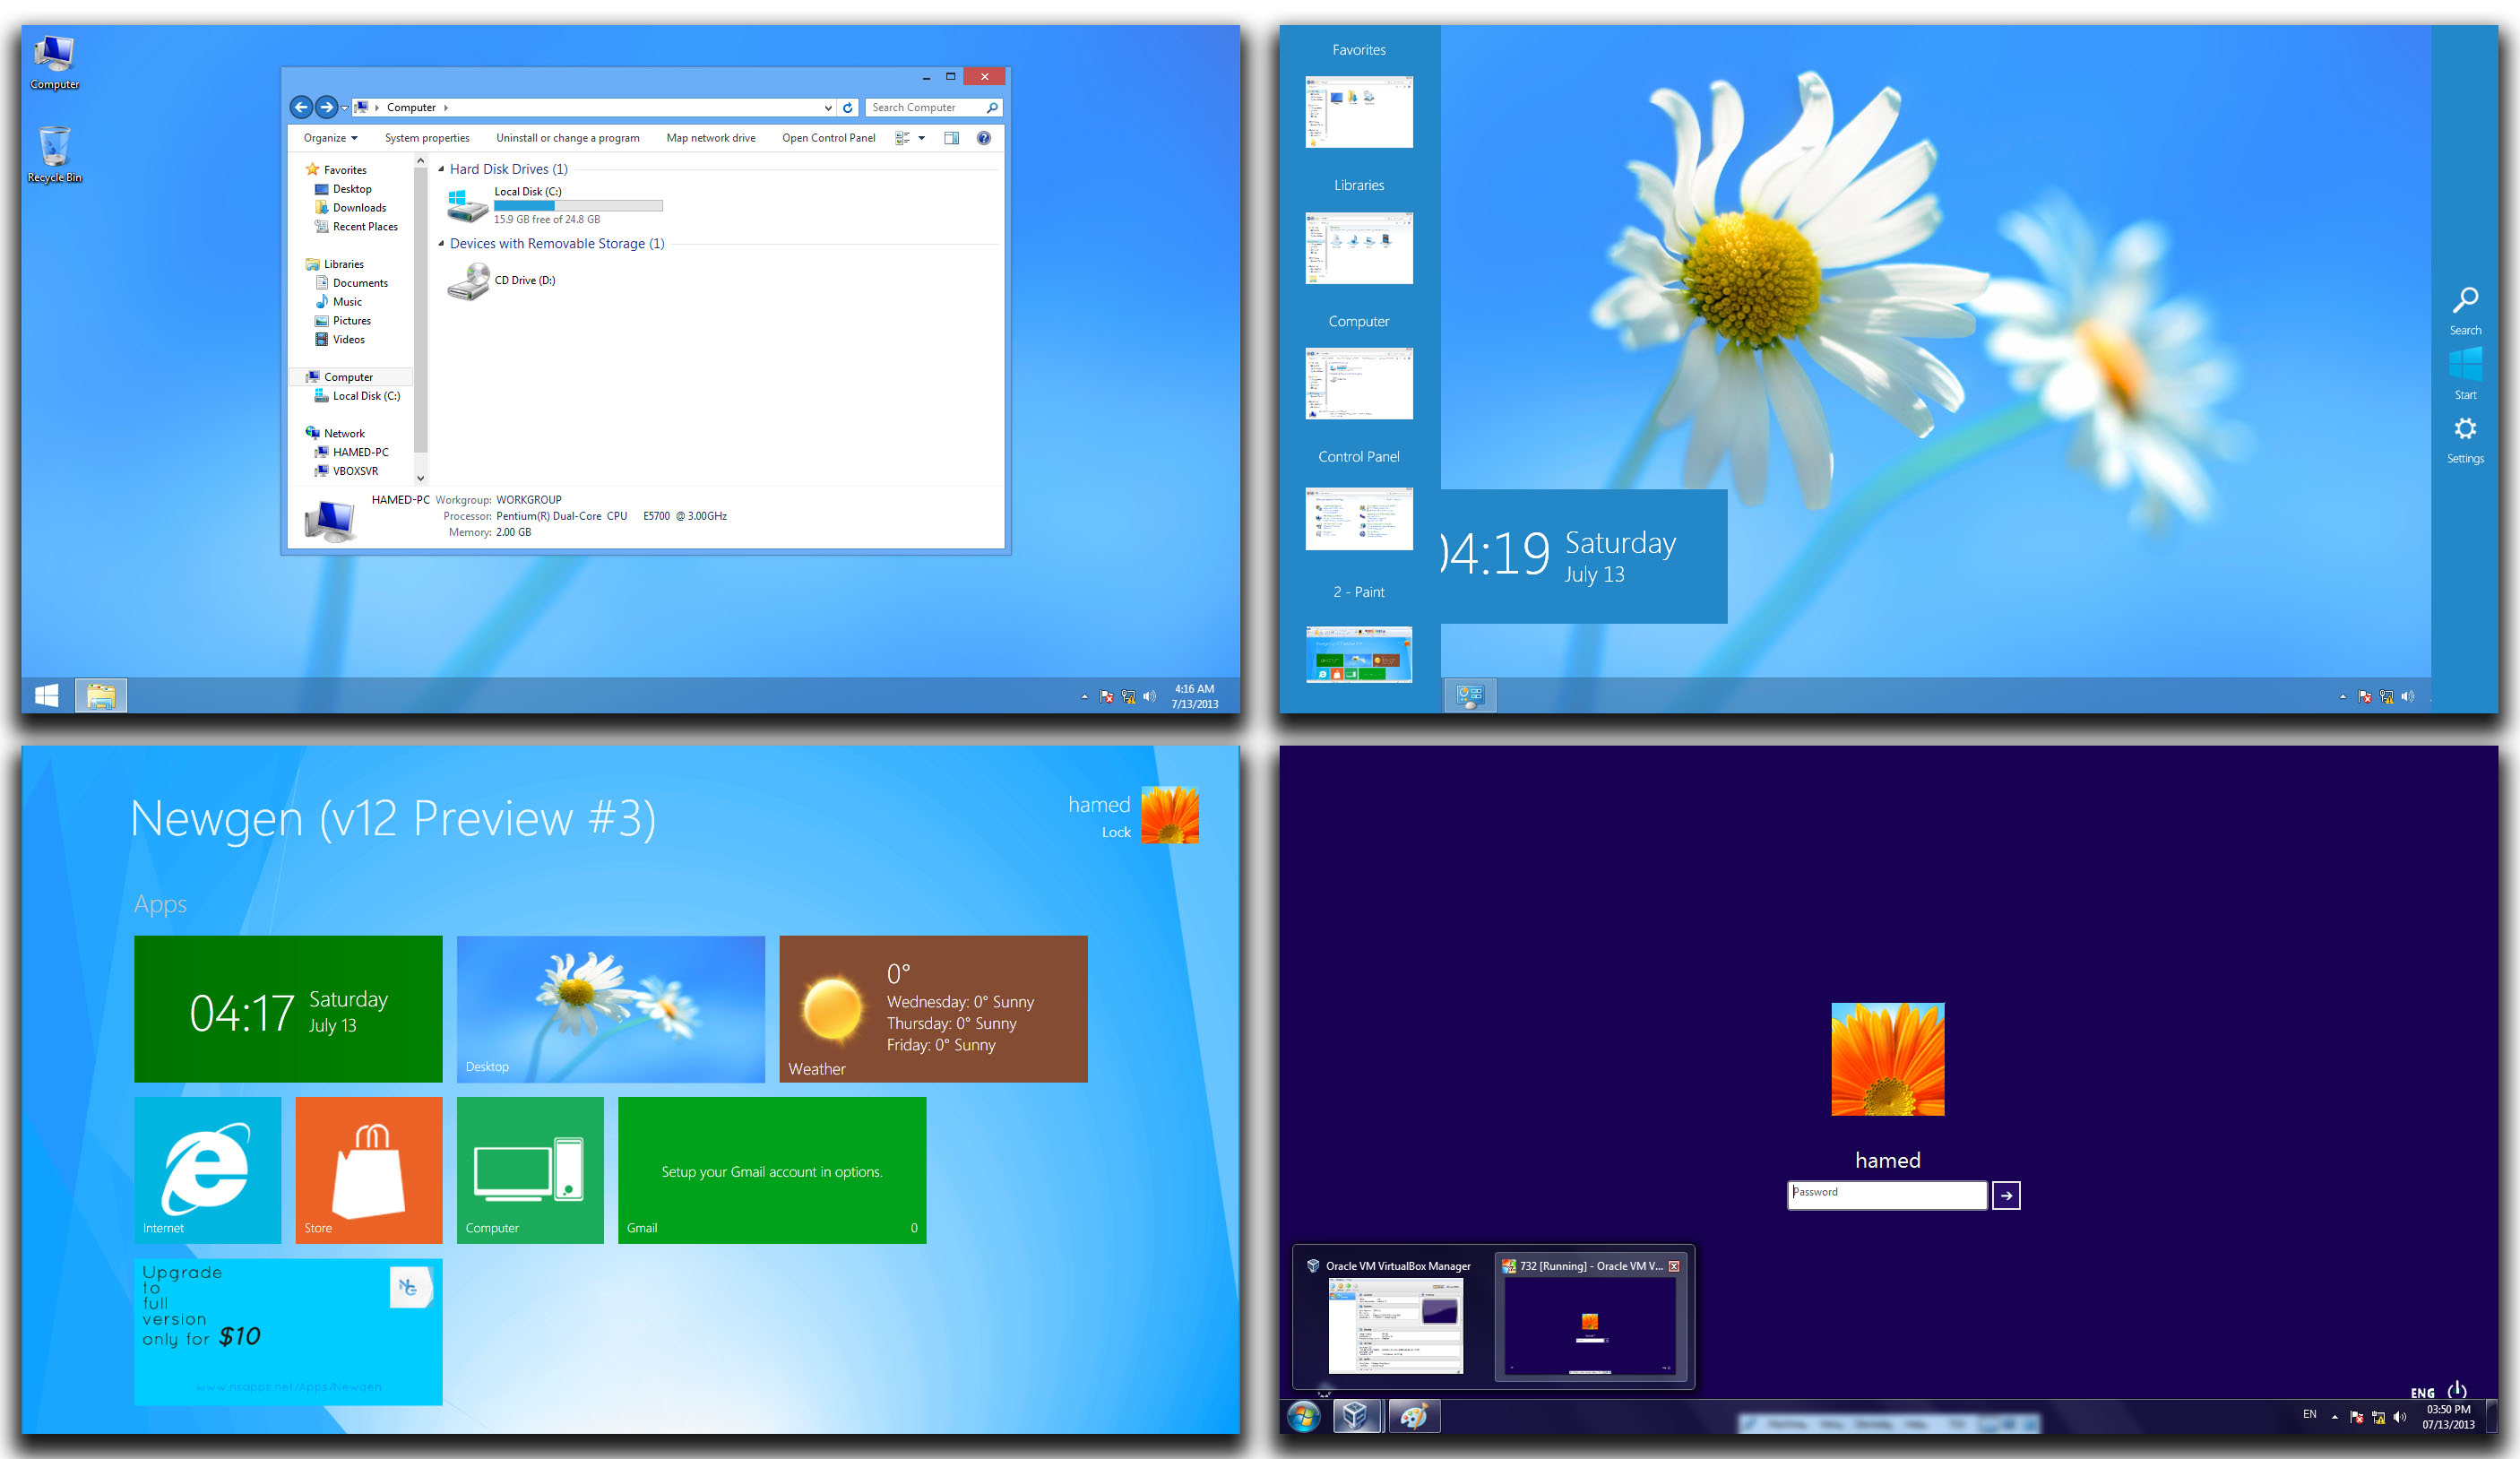 Windows 8.1 Skin Pack is released